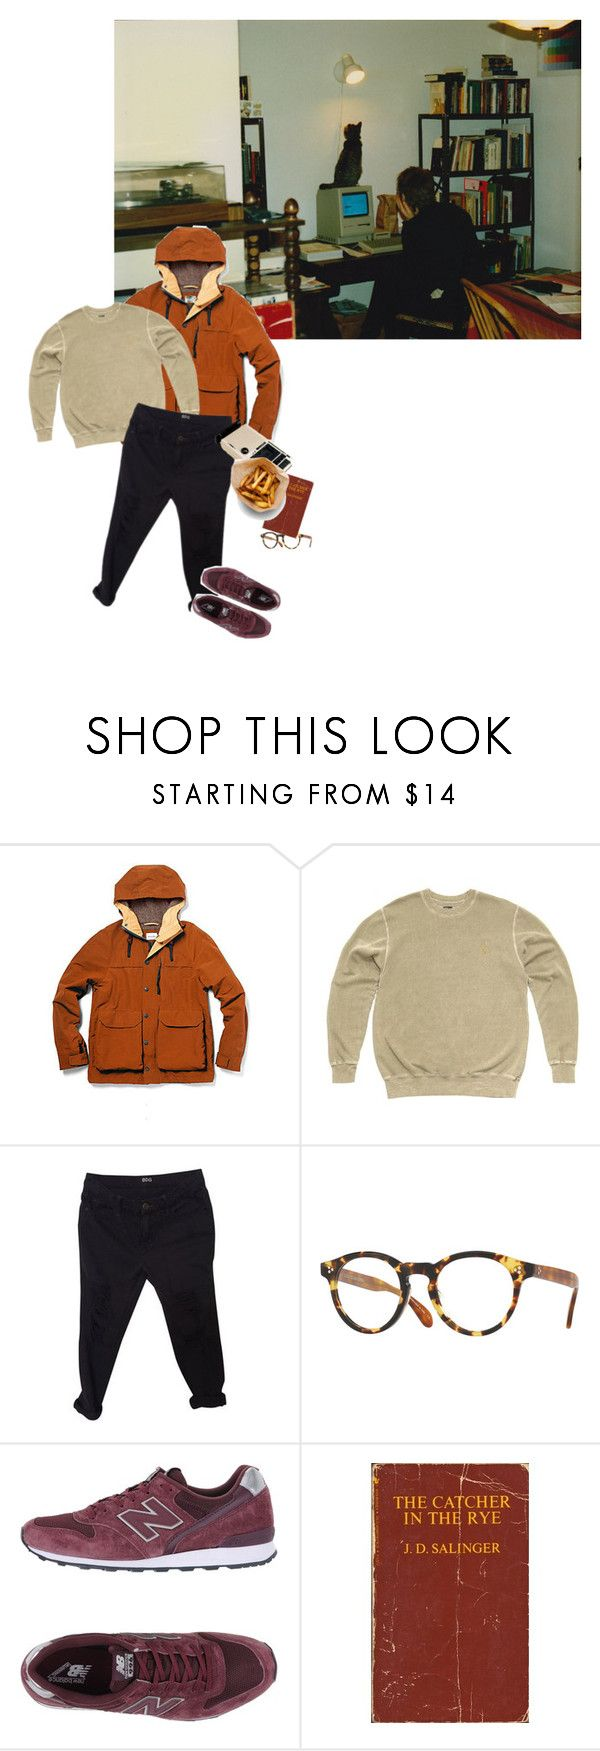 """tomboy"" by lobbyboy95 ❤ liked on Polyvore featuring Steven Alan, October's Very Own, Urban Outfitters, Oliver Peoples and New Balance"